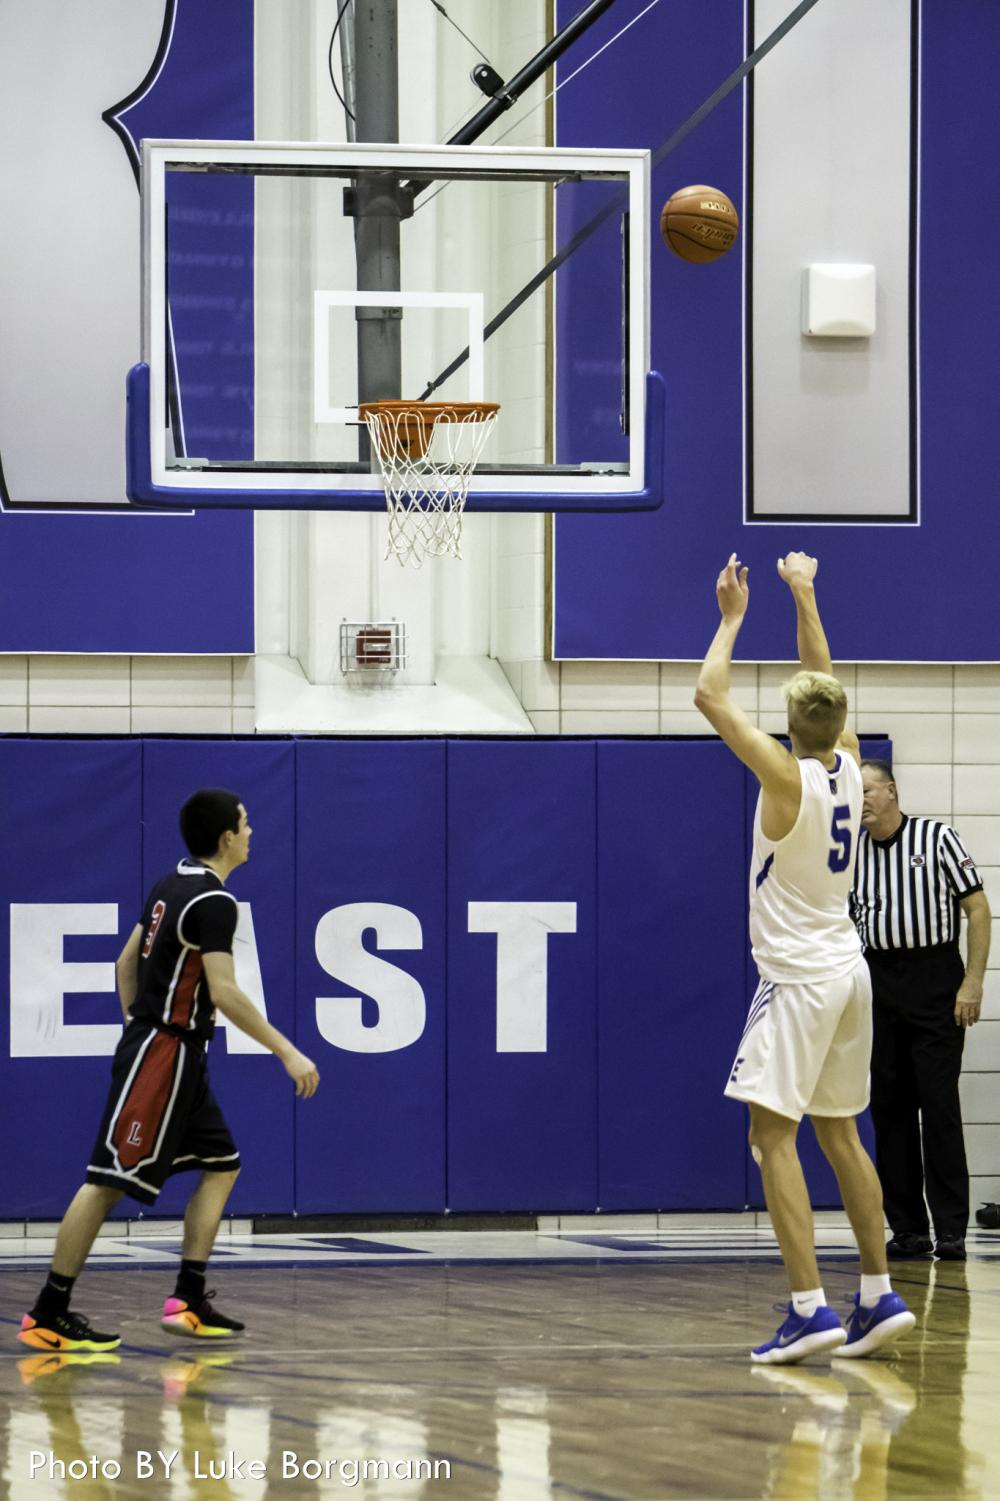 Lincoln East senior forward Sam Griesel (5) shoots a free throw against Lincoln High in the HAC tournament on December 29 at Lincoln East High School.